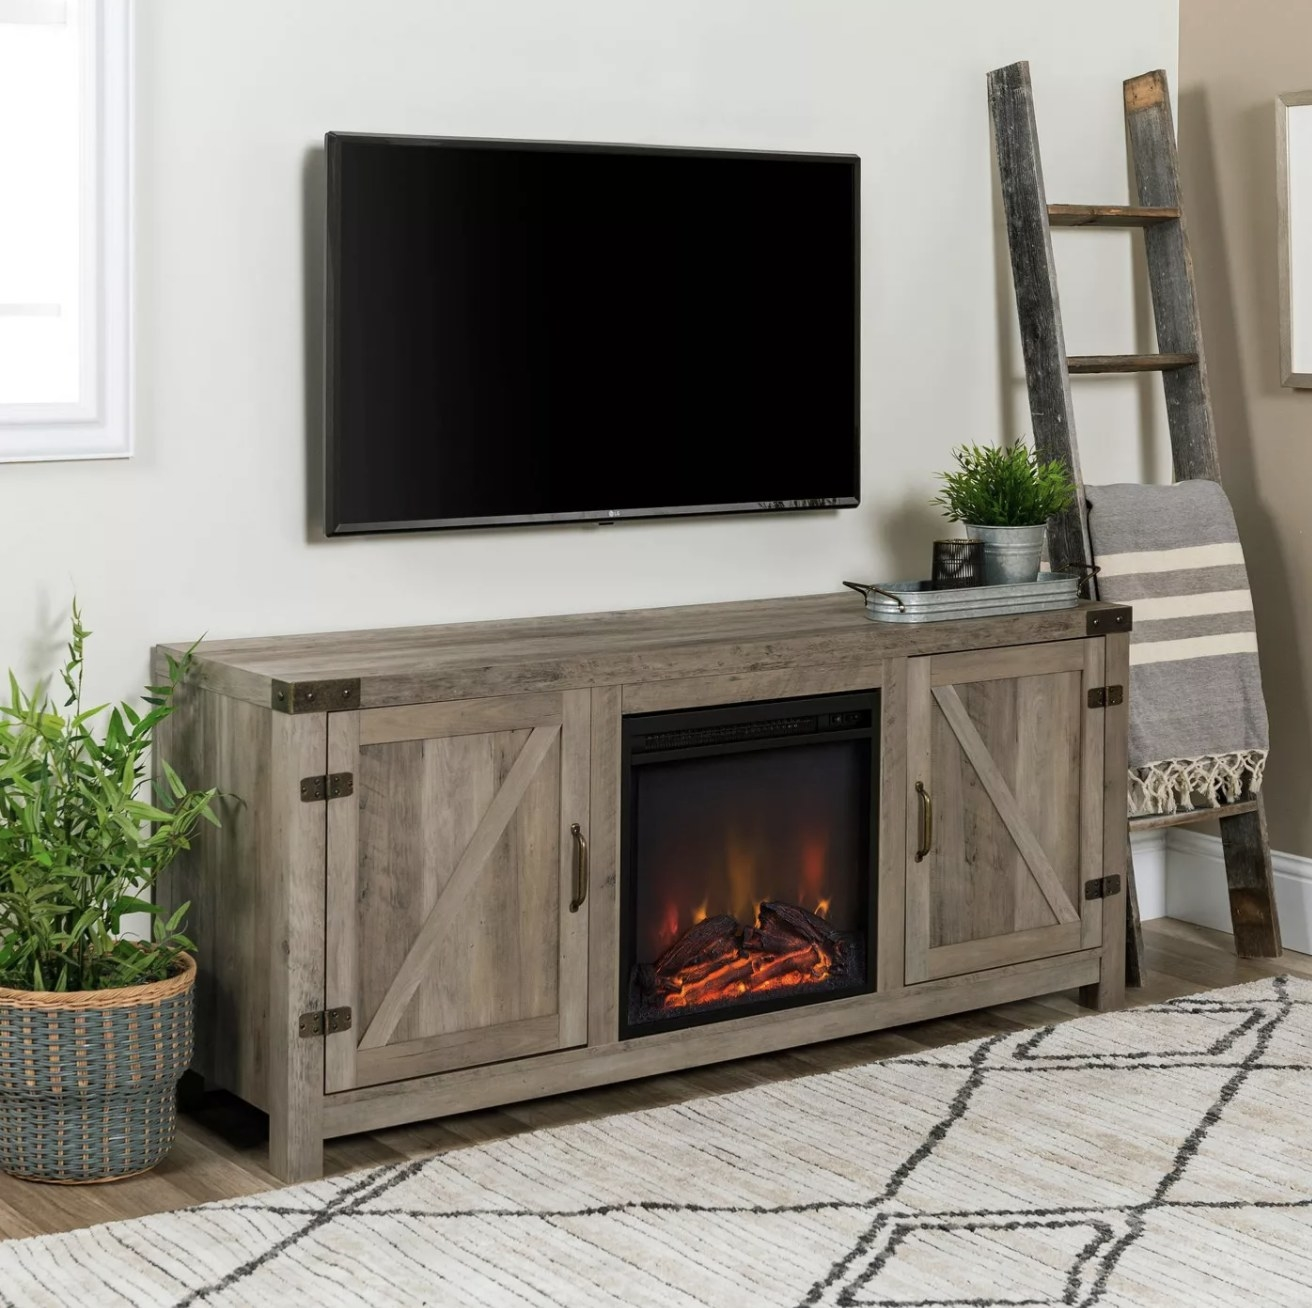 The weathered wood fireplace TV stand under a mounted TV